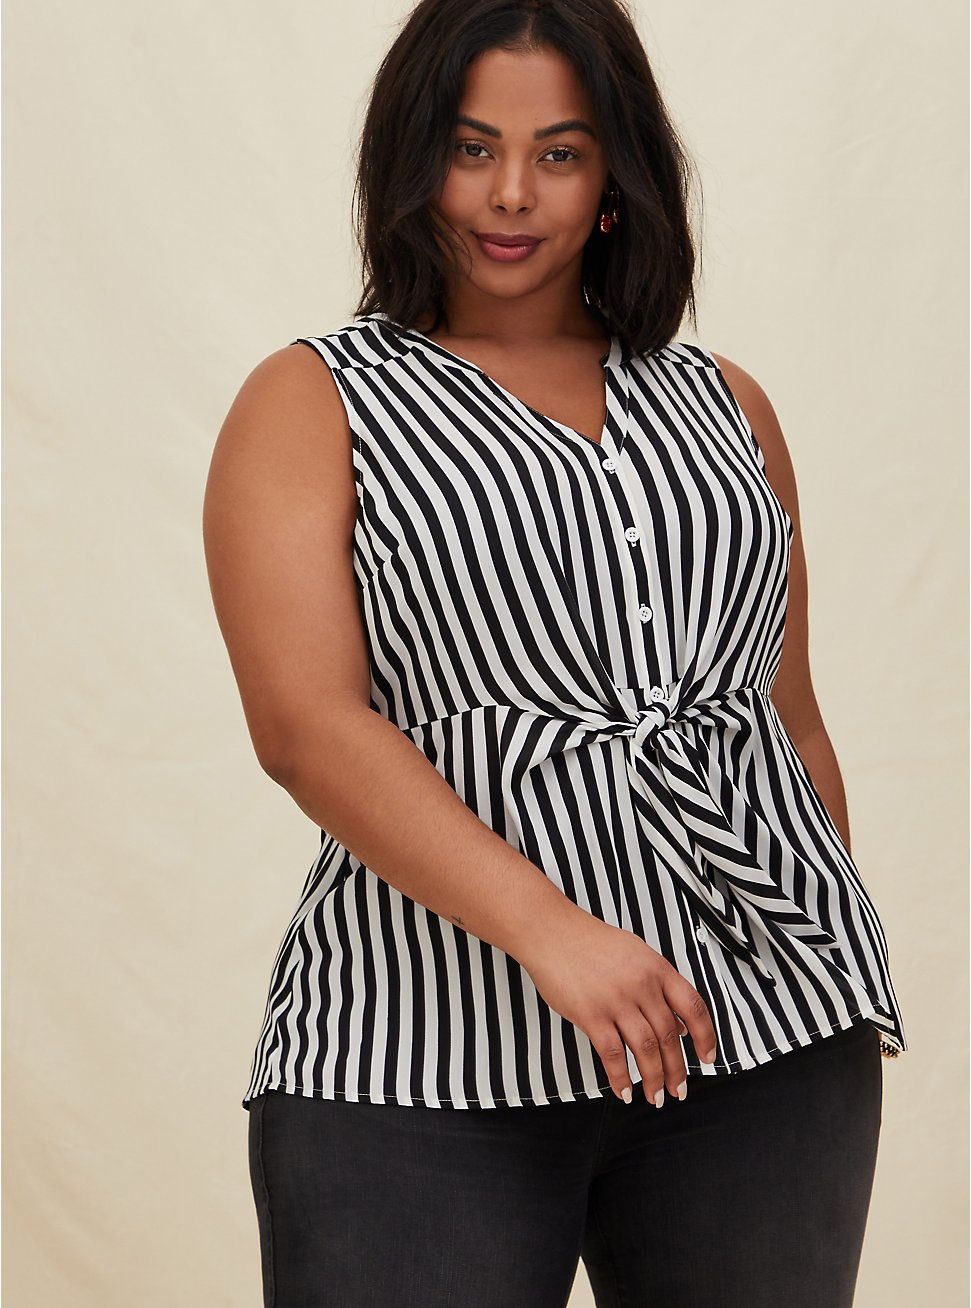 Black & White Stripe Georgette Peplum Tie Front Sleeveless Blouse, STRIPE -BLACK, hi-res